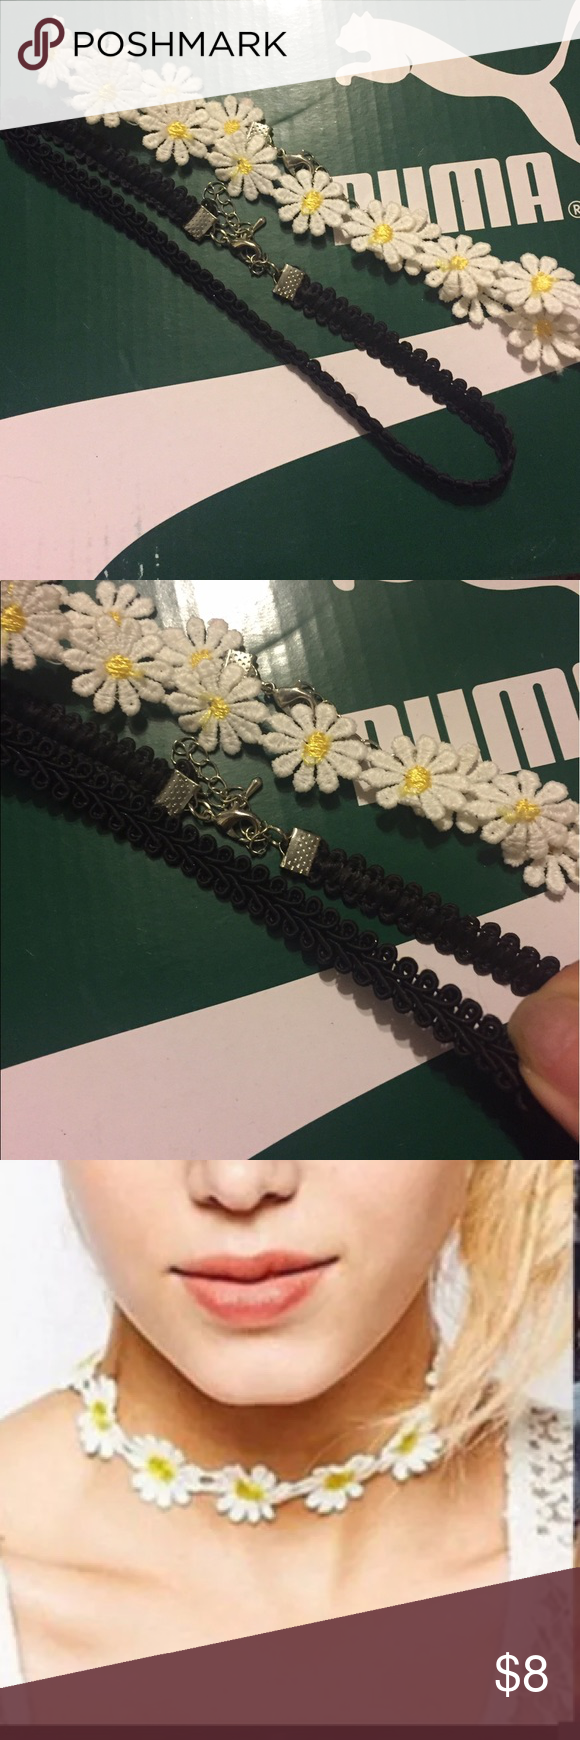 Daisy flower and black lace choker set bundle Set of 2. Never worn. No brand. Layer them together for a sassy look!! 🌸😻 Forever 21 Jewelry Necklaces